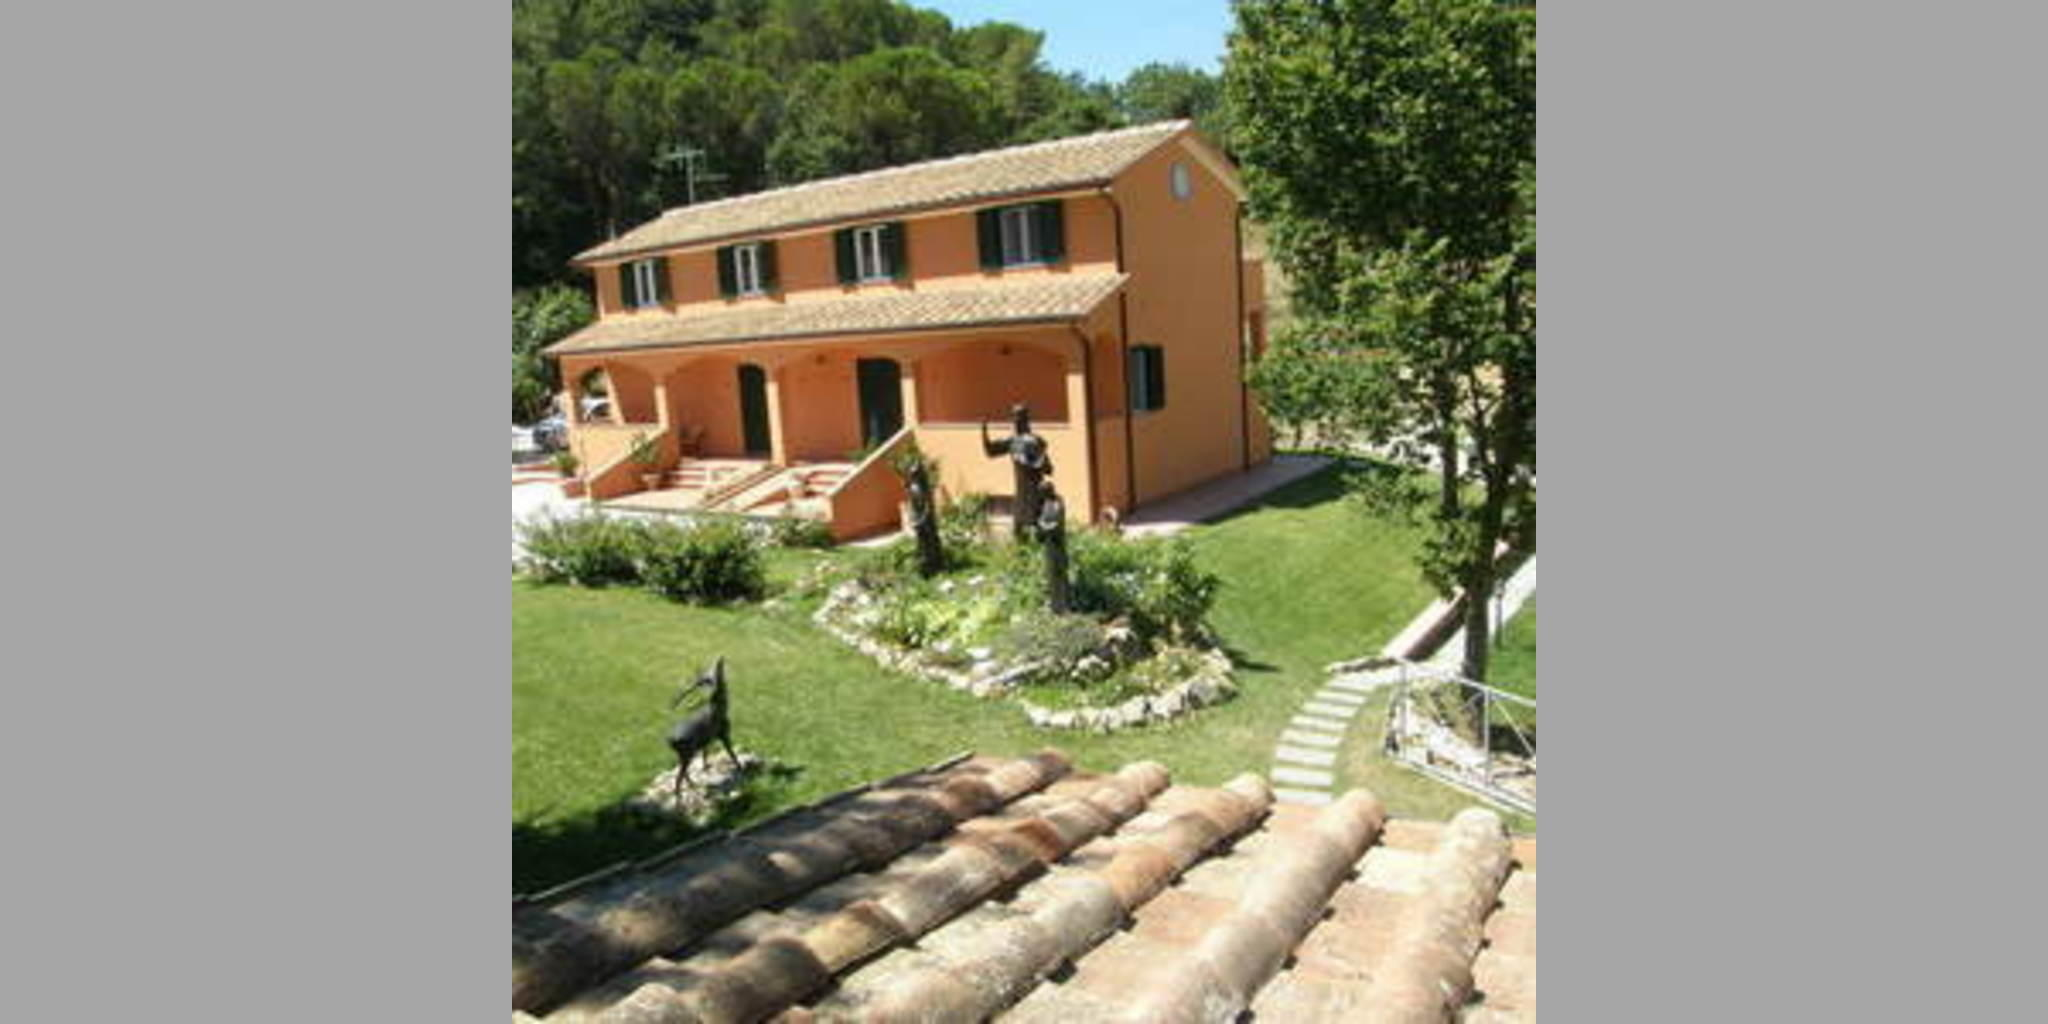 Bed & Breakfast Collesalvetti - Parrana San Giusto